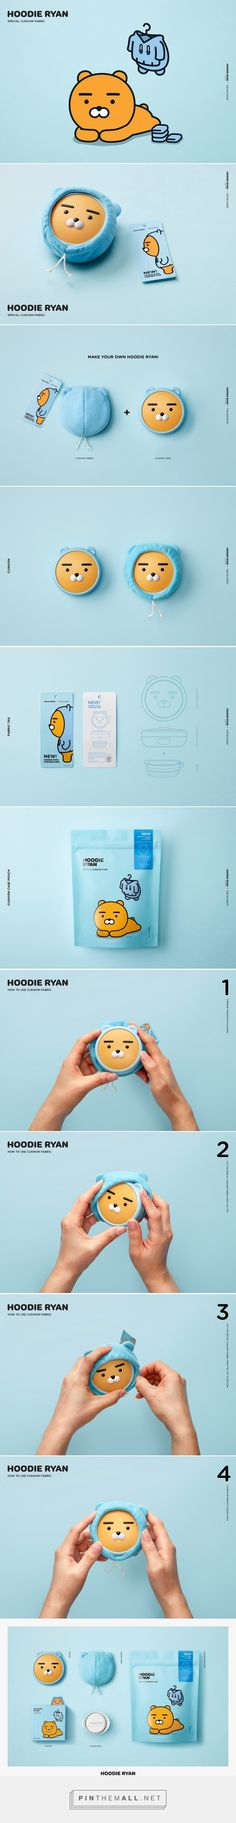 HOODIE RYAN x THEFACESHOP collaboration (with cushion fabric)  -  Packaging of the World - Creative Package Design Gallery - http://www.packagingoftheworld.com/2017/11/hoodie-ryan-x-thefaceshop-collaboration.html